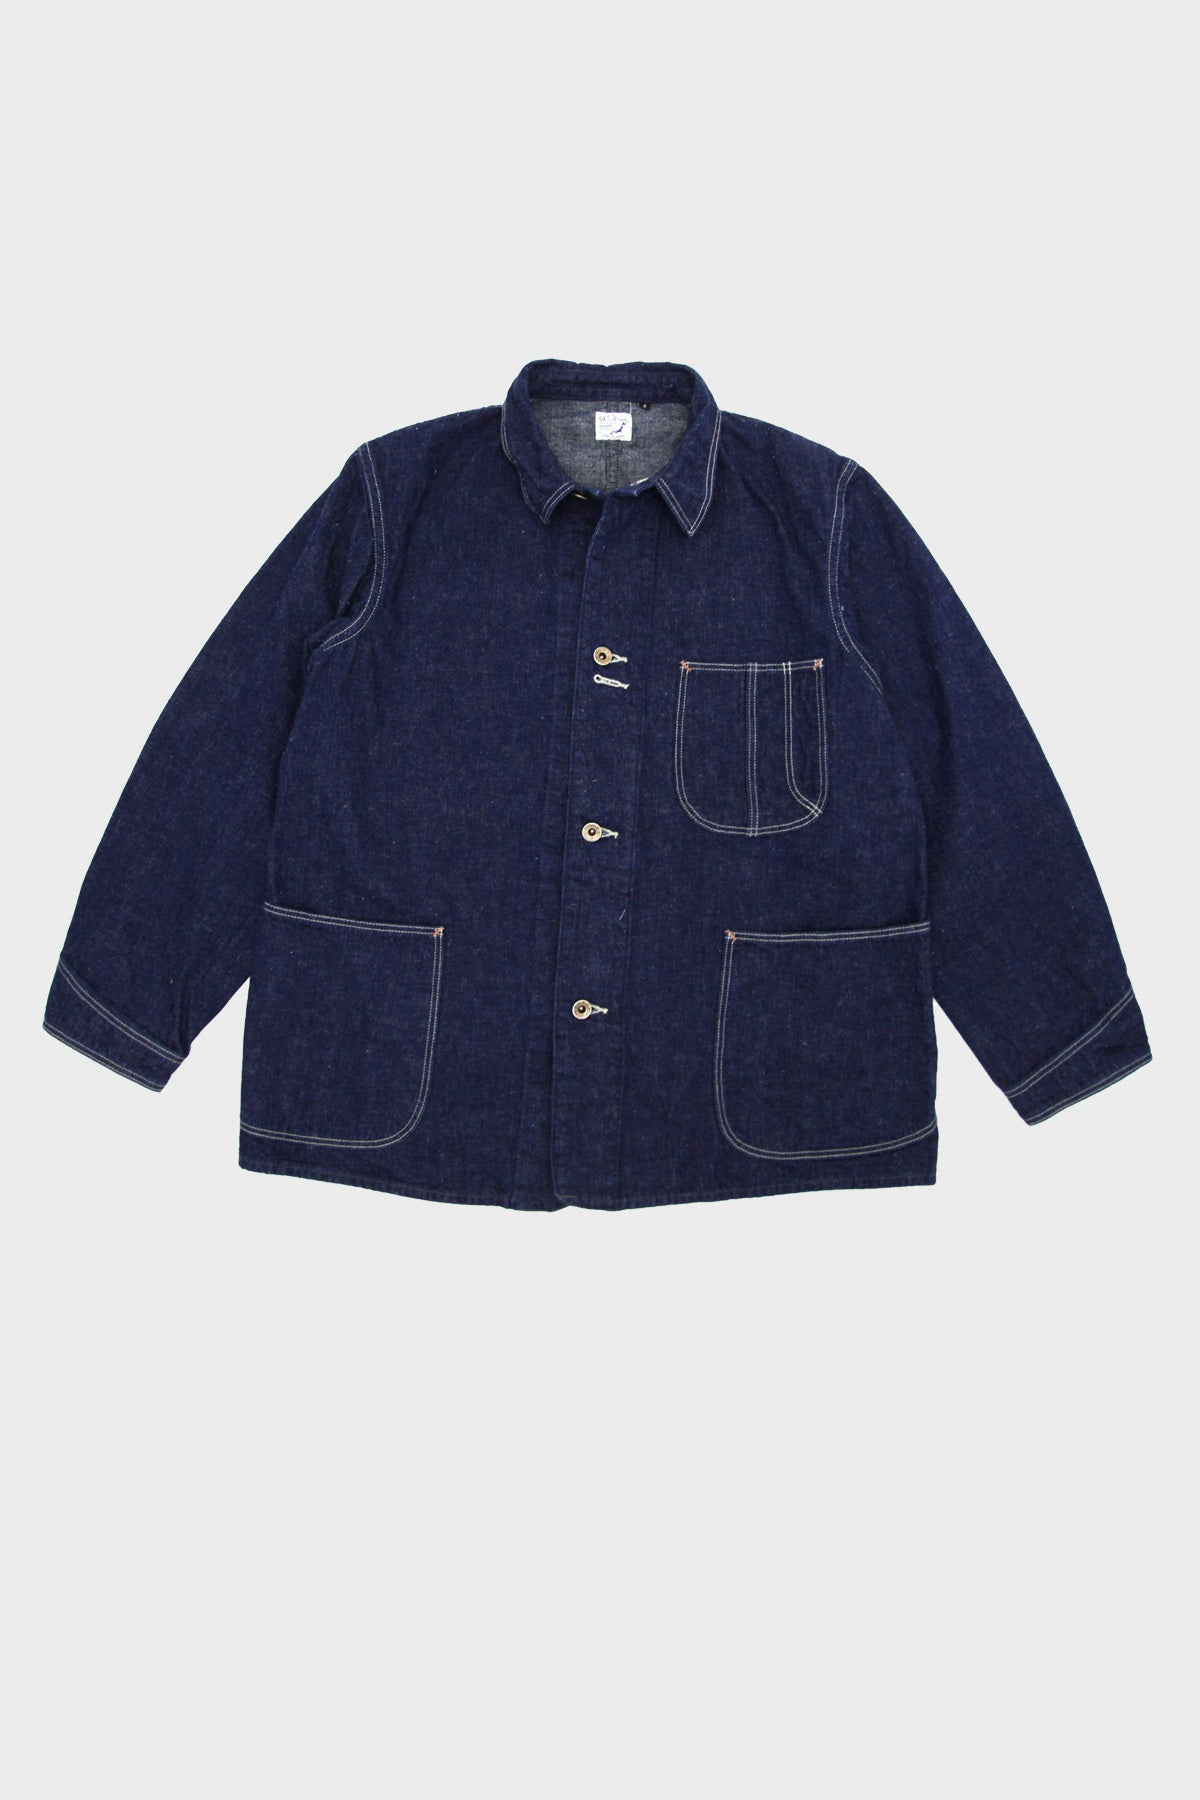 orSlow - 40's Coverall - One Wash Original Denim - Canoe Club